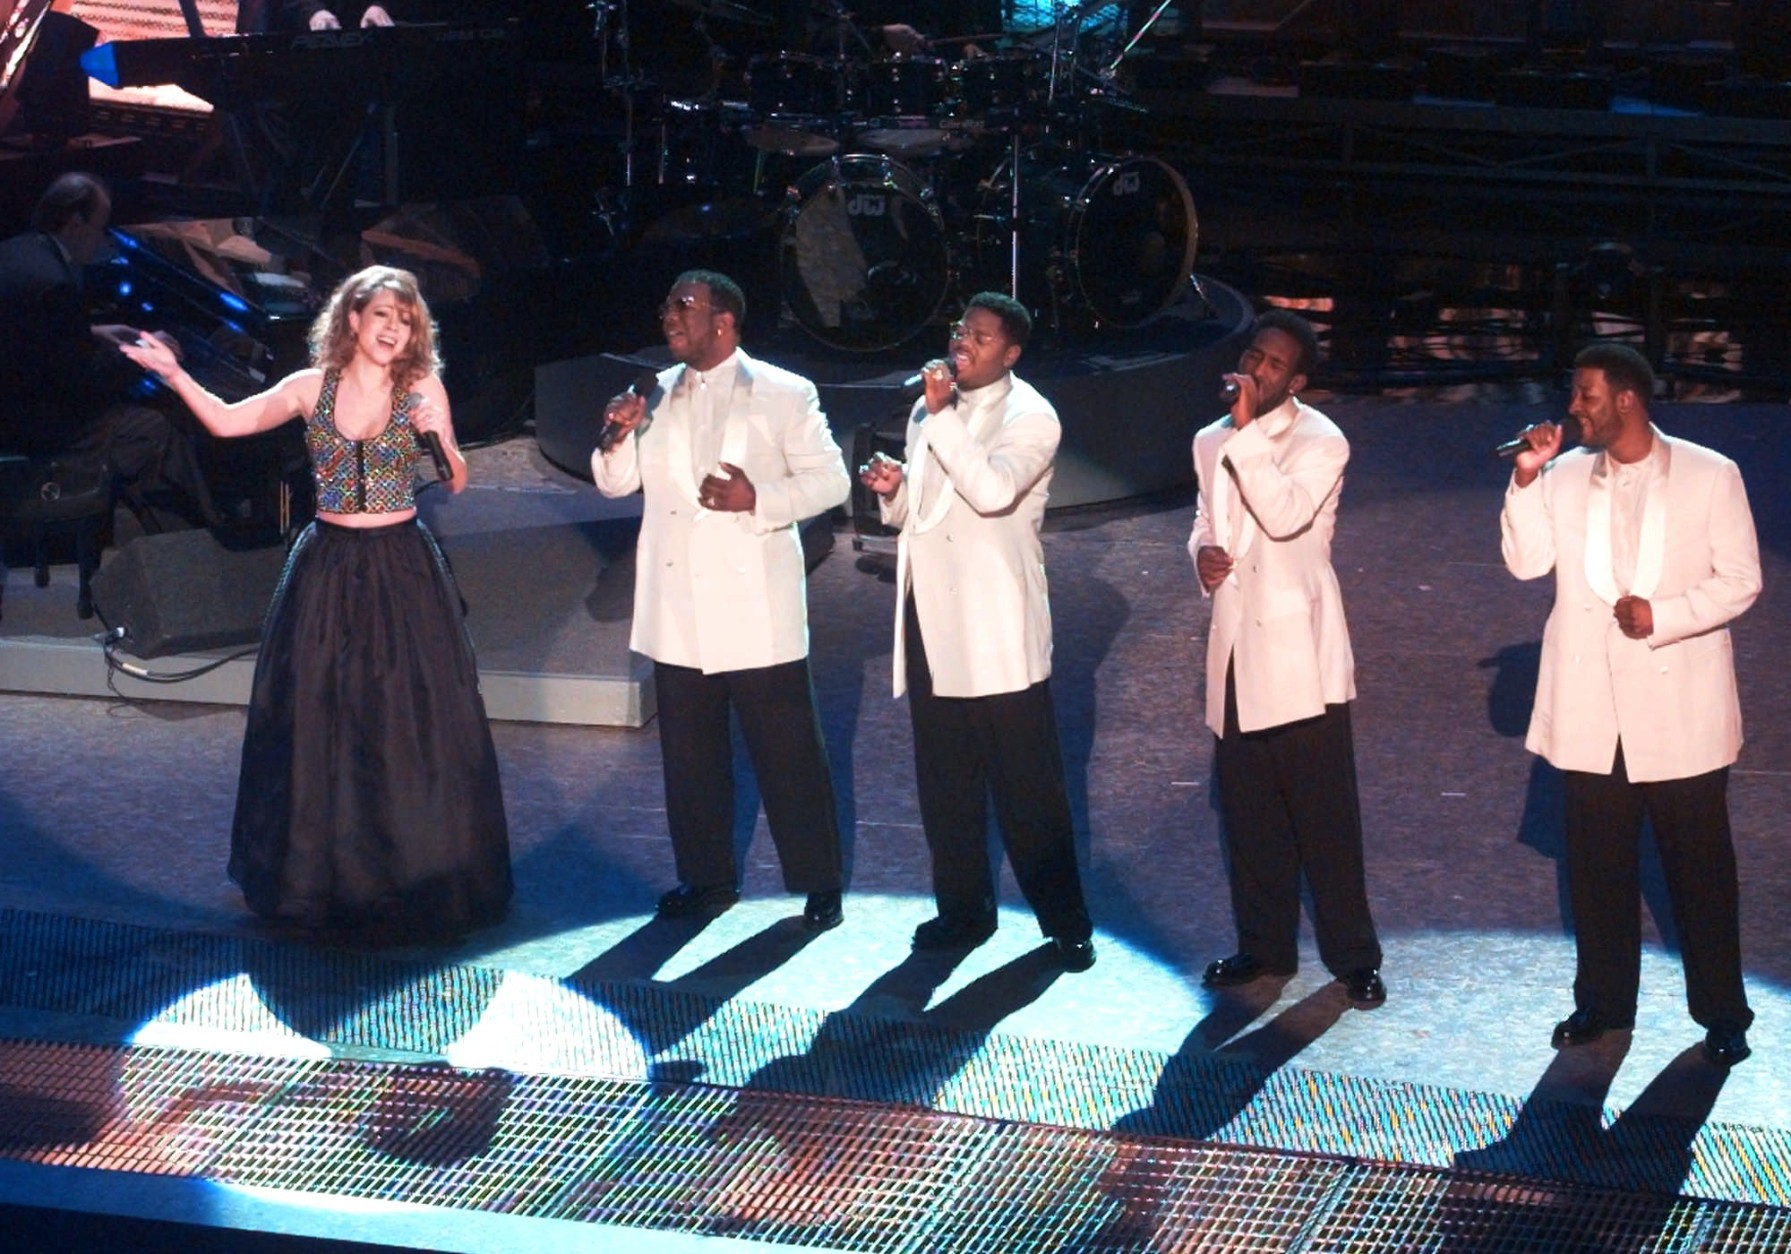 Mariah Carey performs with Boyz II Men during the opening of the 38th annual Grammy Awards at the Shrine Auditorium in Los Angeles Wednesday, Feb. 28, 1996. Boyz II Men members are, from right, Nate Morris, Shawn Stockman, Michael McCary and Wanya Morris. (AP Photo/Eric Draper)